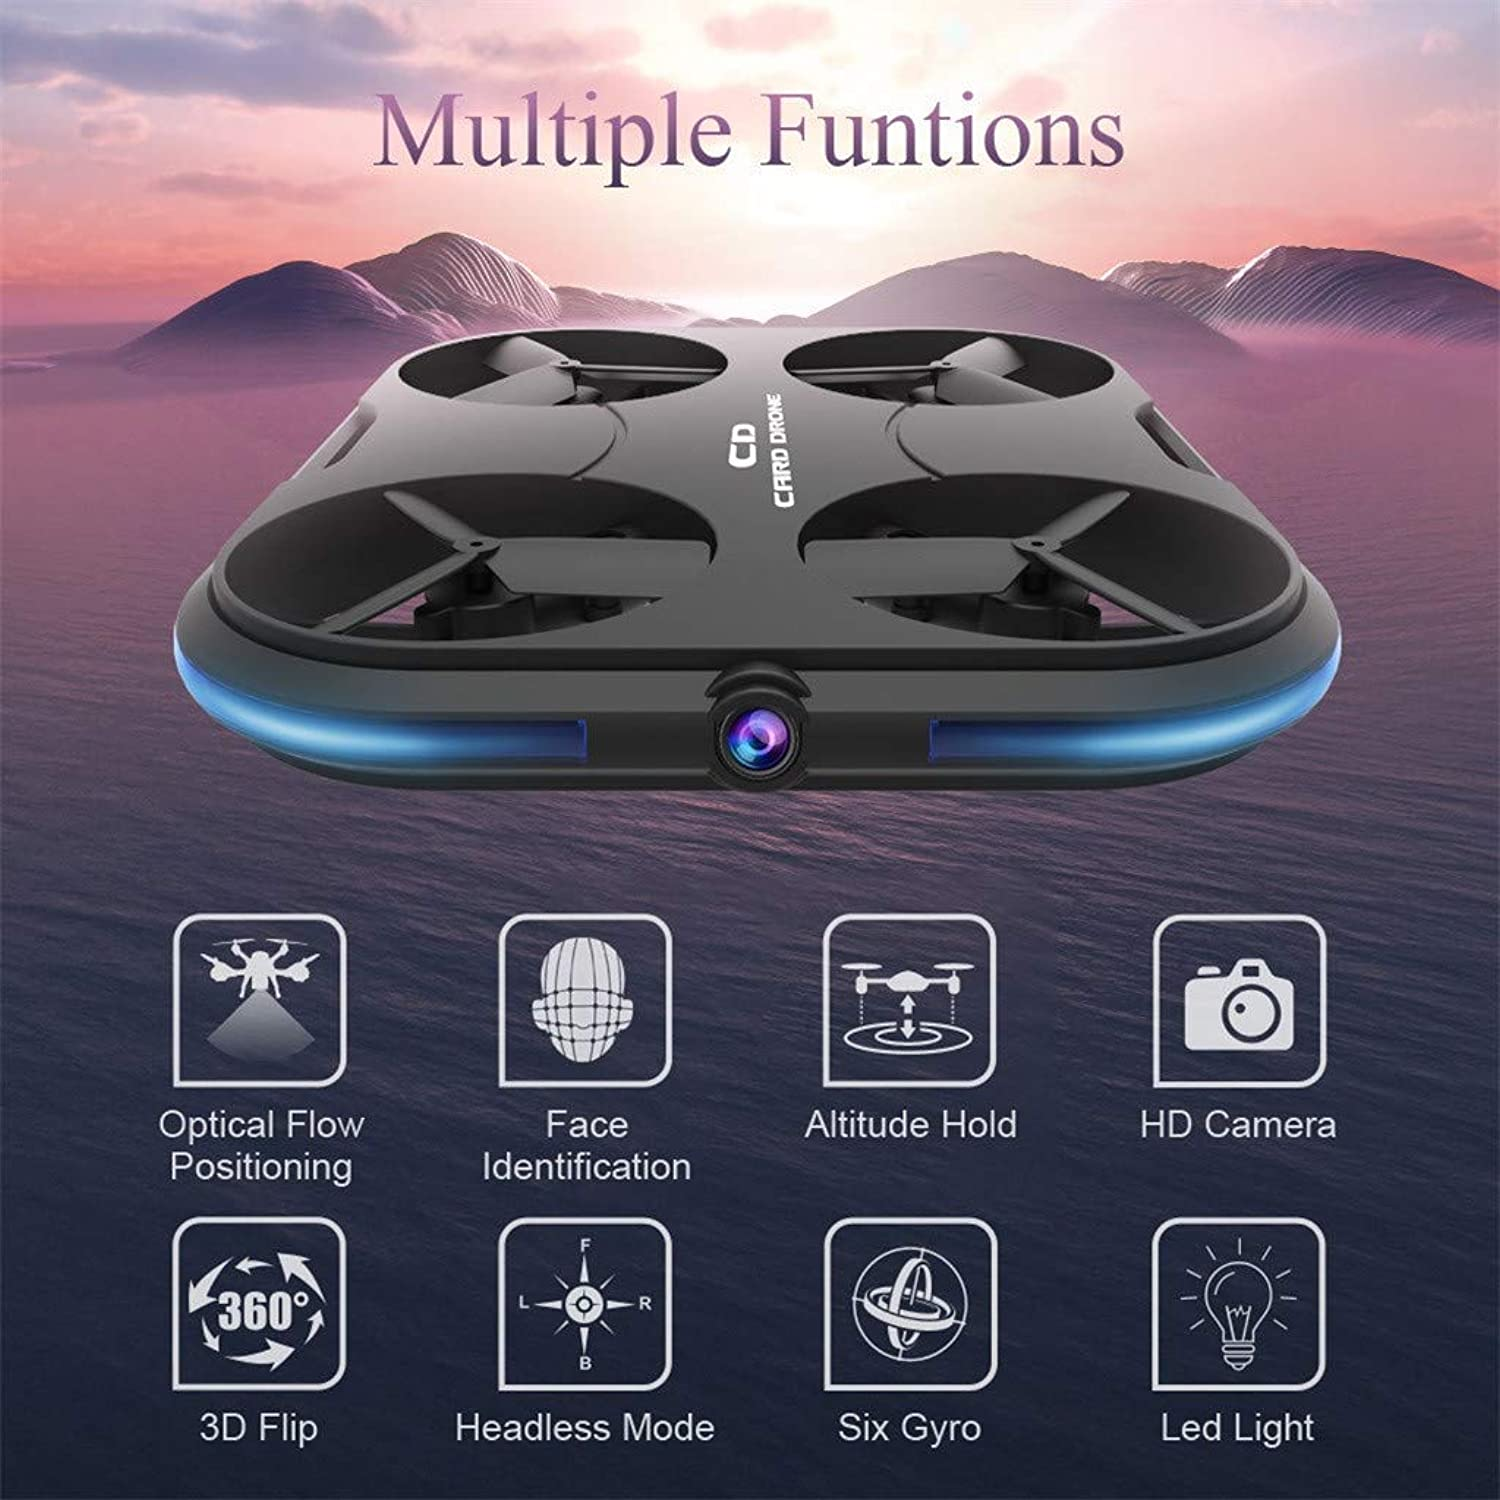 RC Drone for Boys Girls,WiFi FPV Live Video 720P HD Camera Drone with Follow Me,Face Recognition,Optical Flow Positioning,2.4G 6 Axis Micro Remote Control Mini Lightweight Quadcopter for Kids